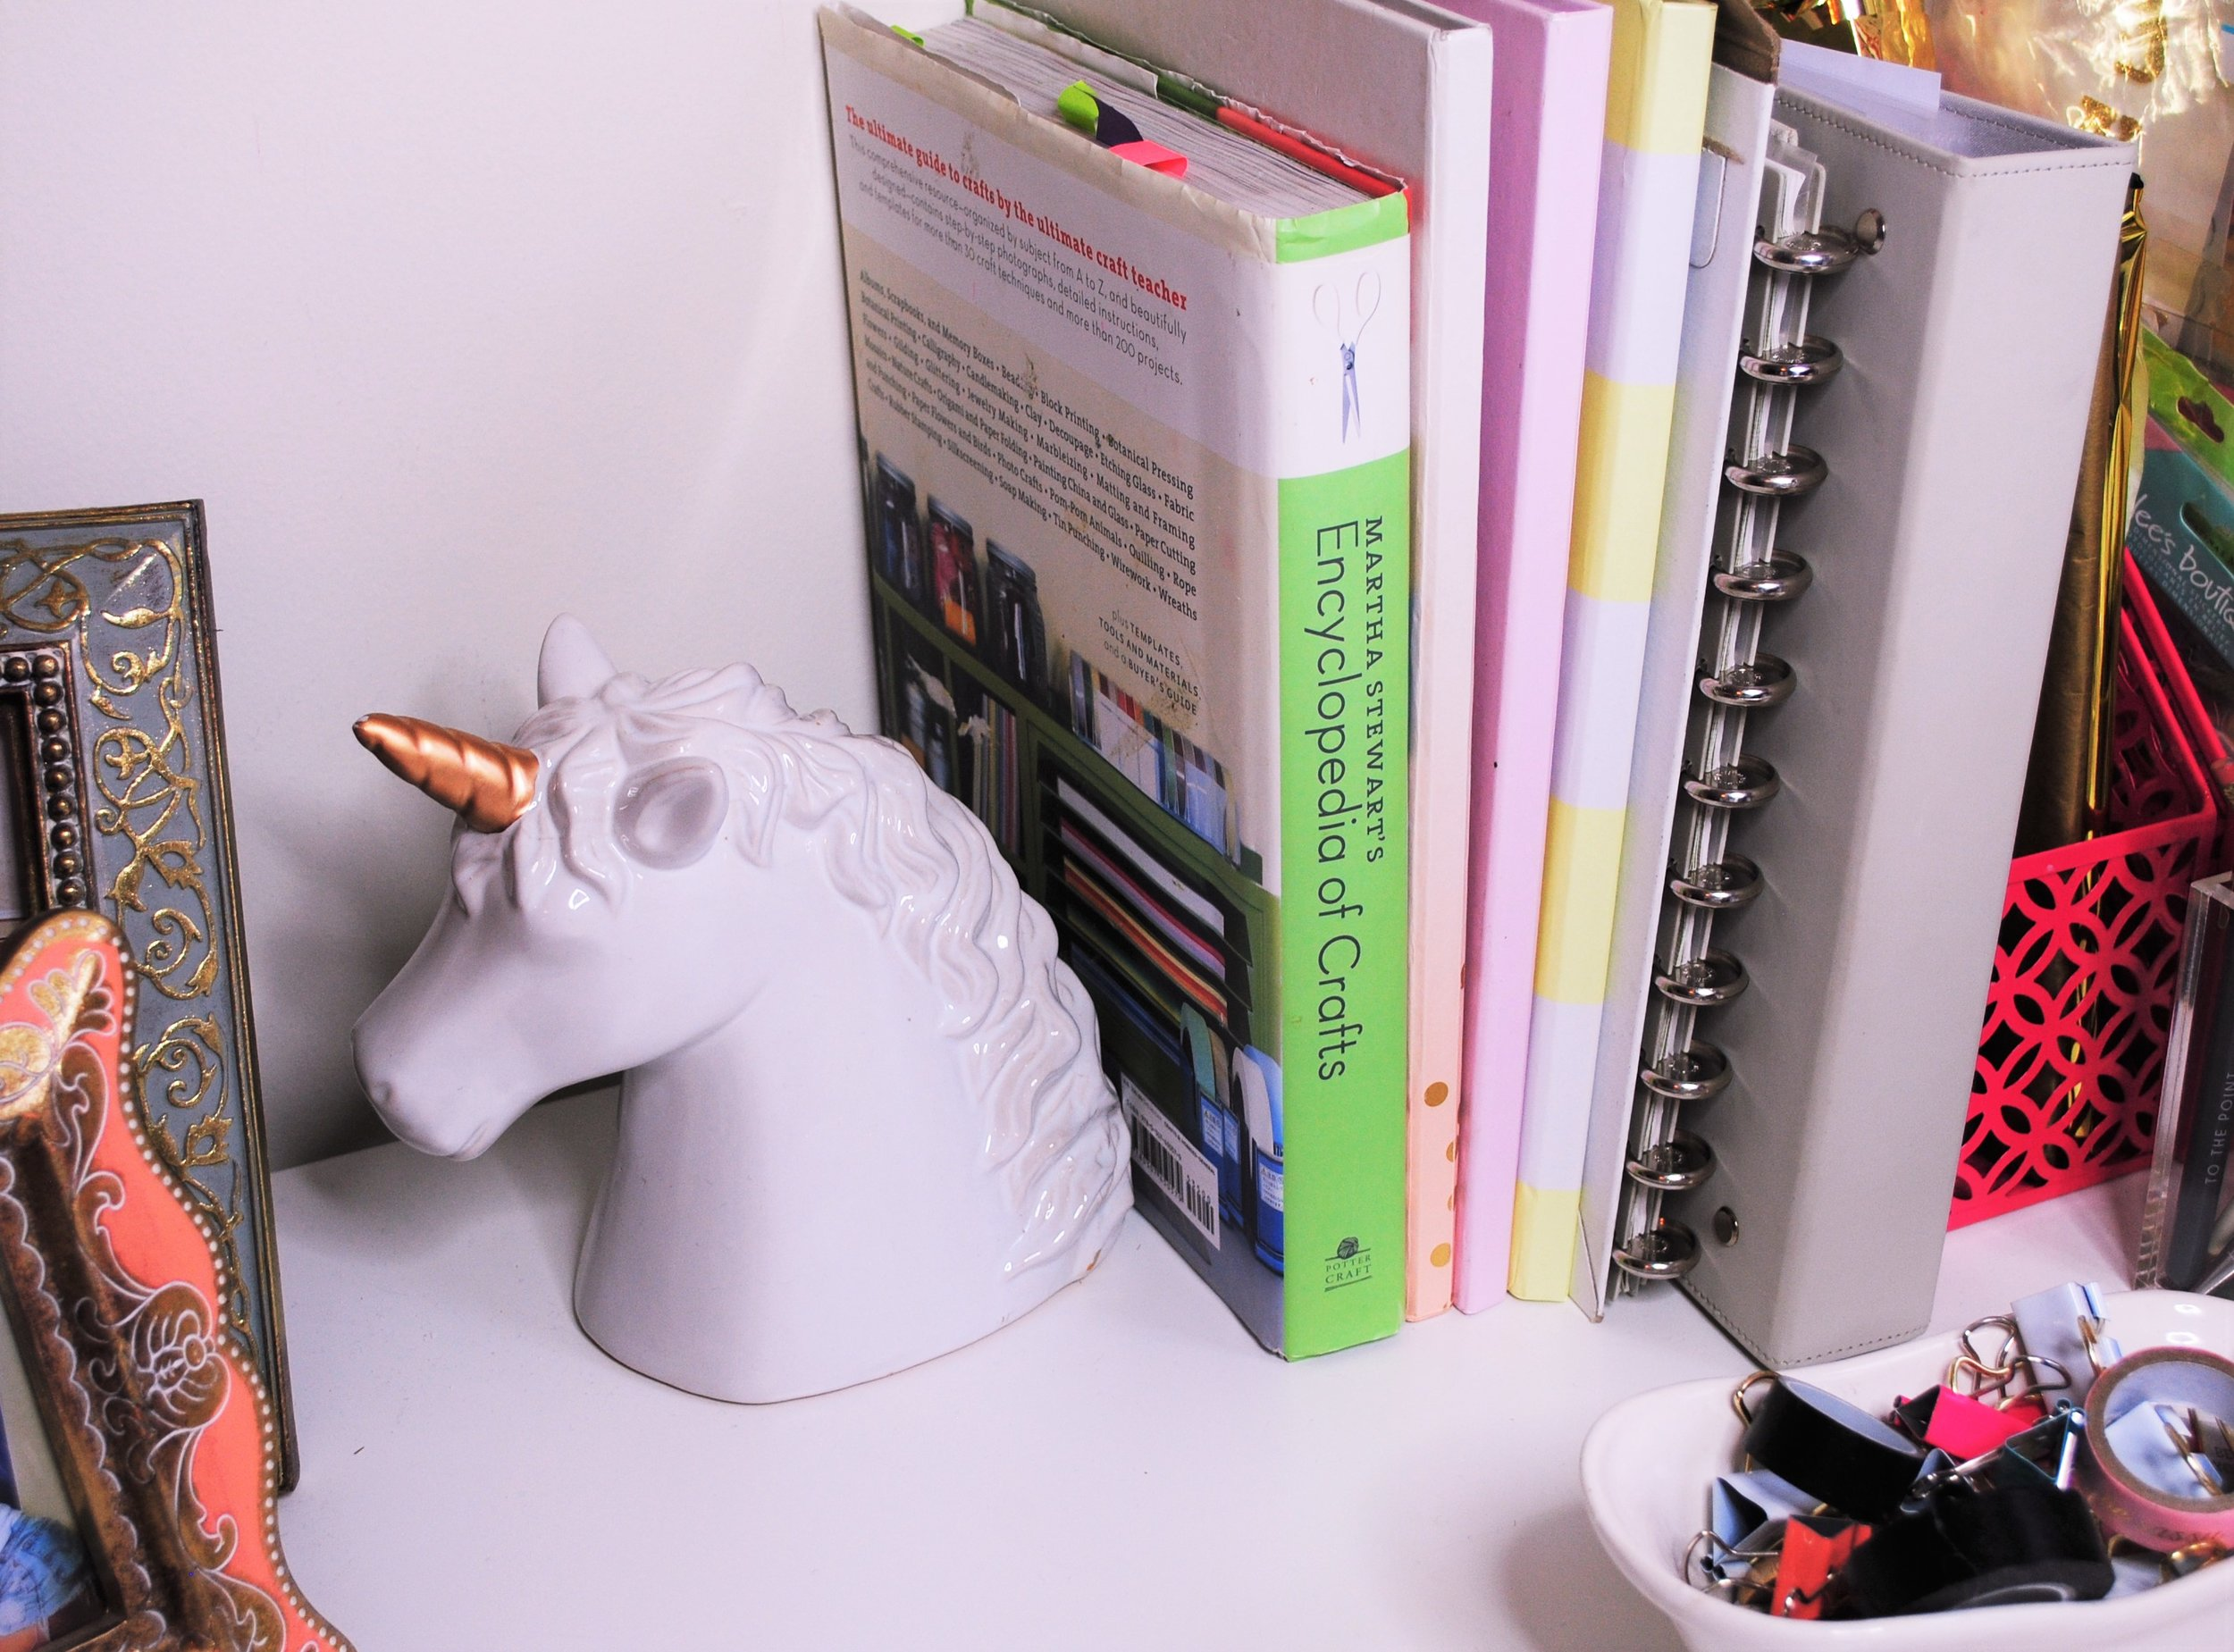 It's not complete without a unicorn! - I found this ceramic unicorn head at Marshall's for $6 which is a total steal, and I use it to prop up all of my favorite craft books and binders.